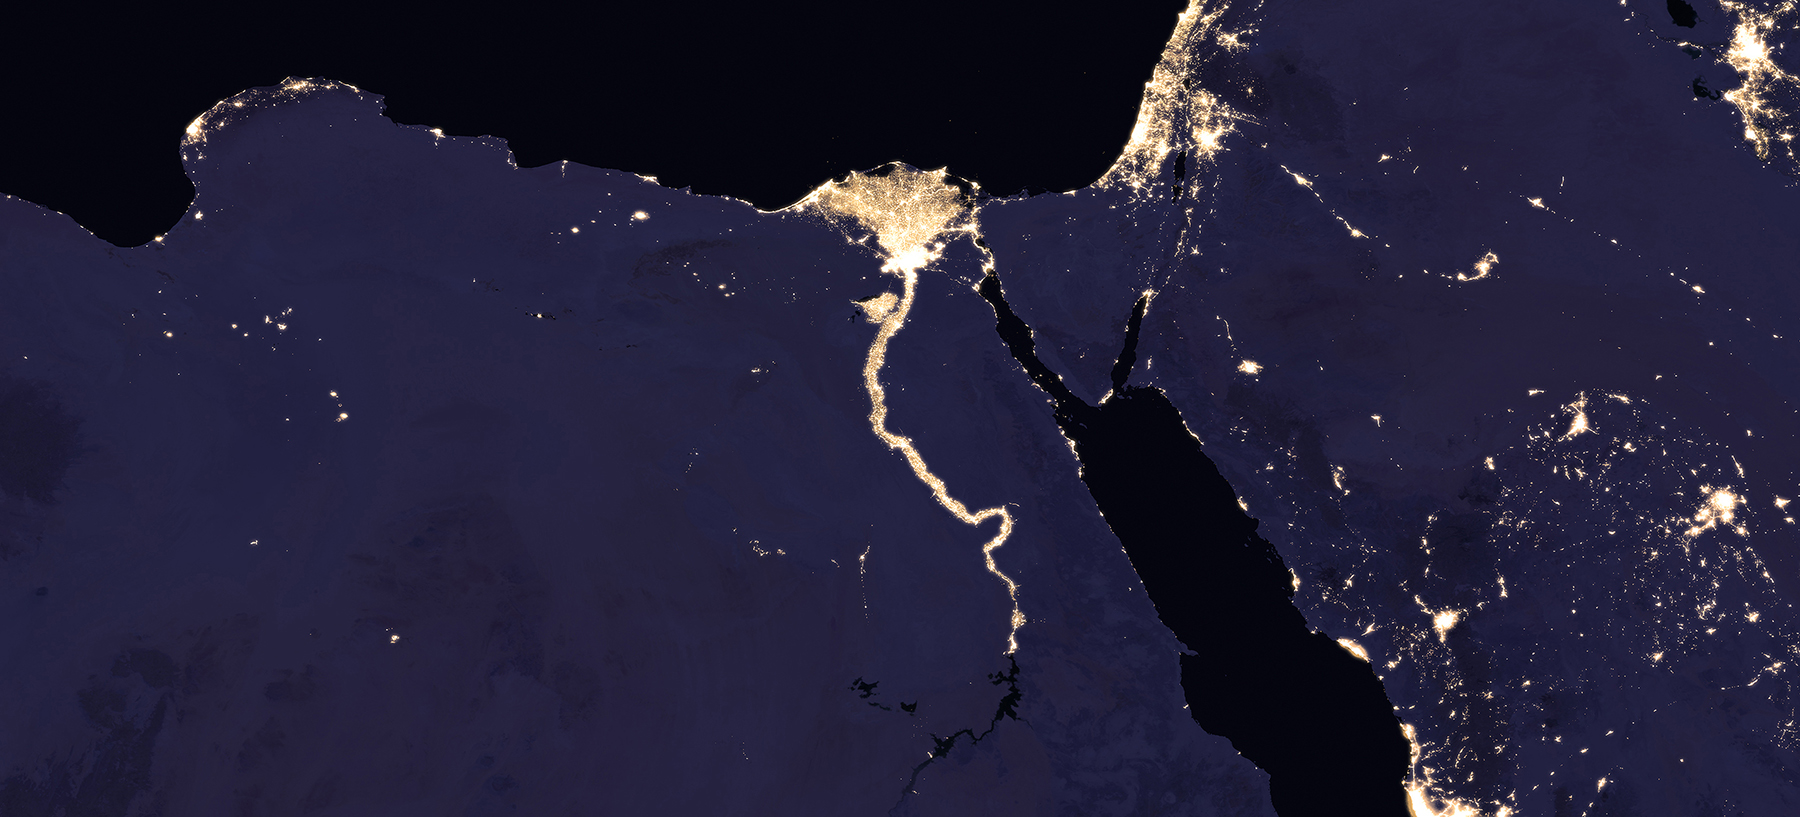 Composite image of Nile River and surrounding region at night, 2016. (NASA Earth Observatory images by Joshua Stevens, using Suomi NPP VIIRS data from Miguel Román, NASA's Goddard Space Flight Center)